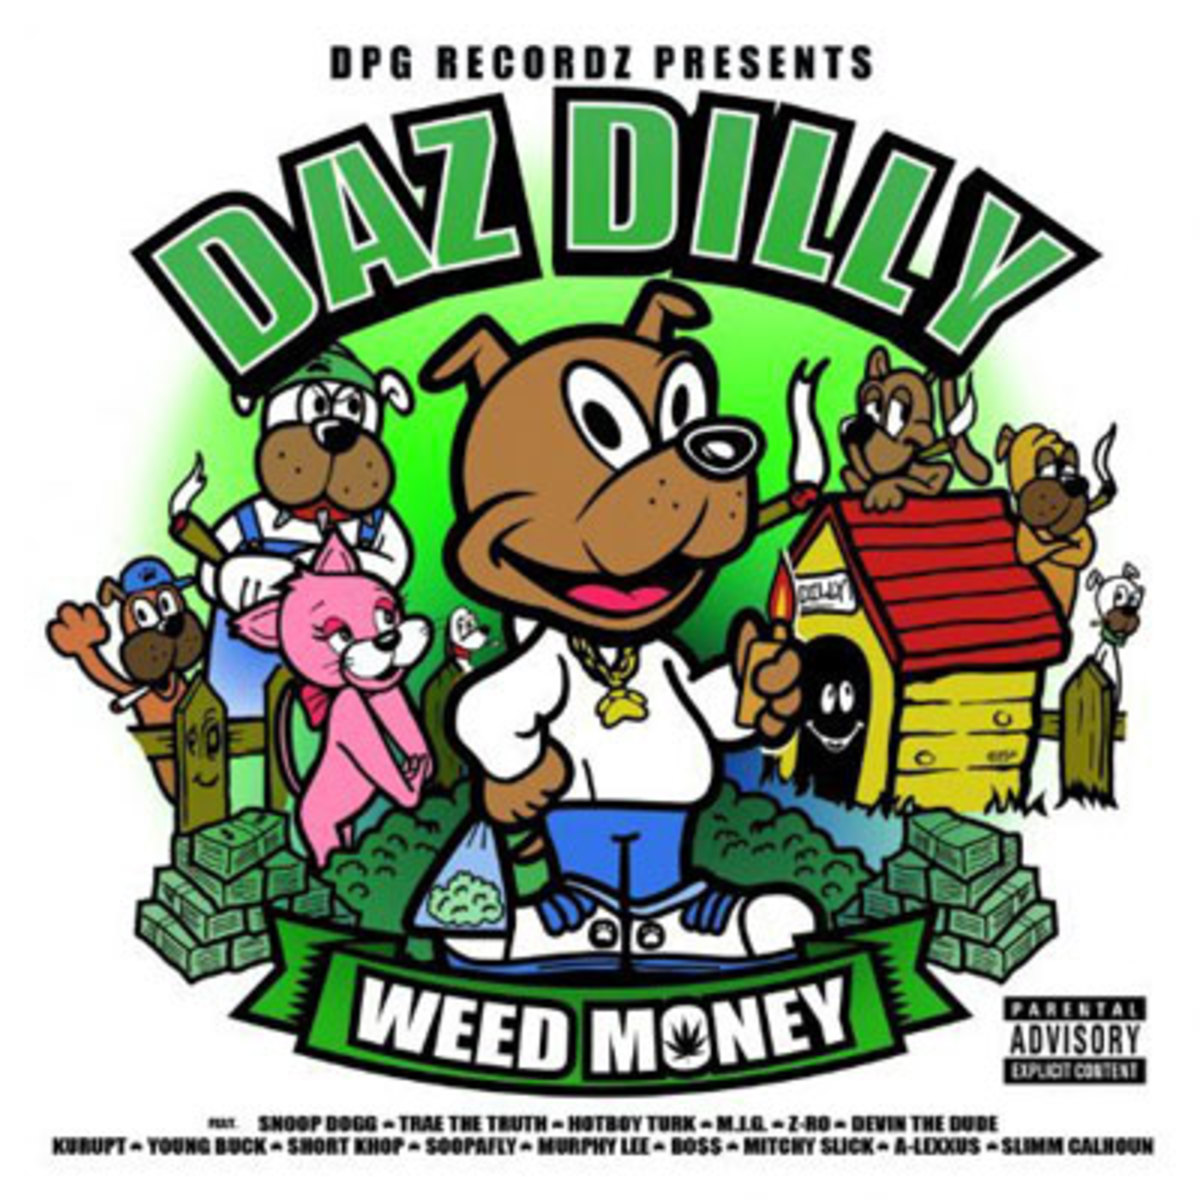 dazdilly-weedmoney.jpg